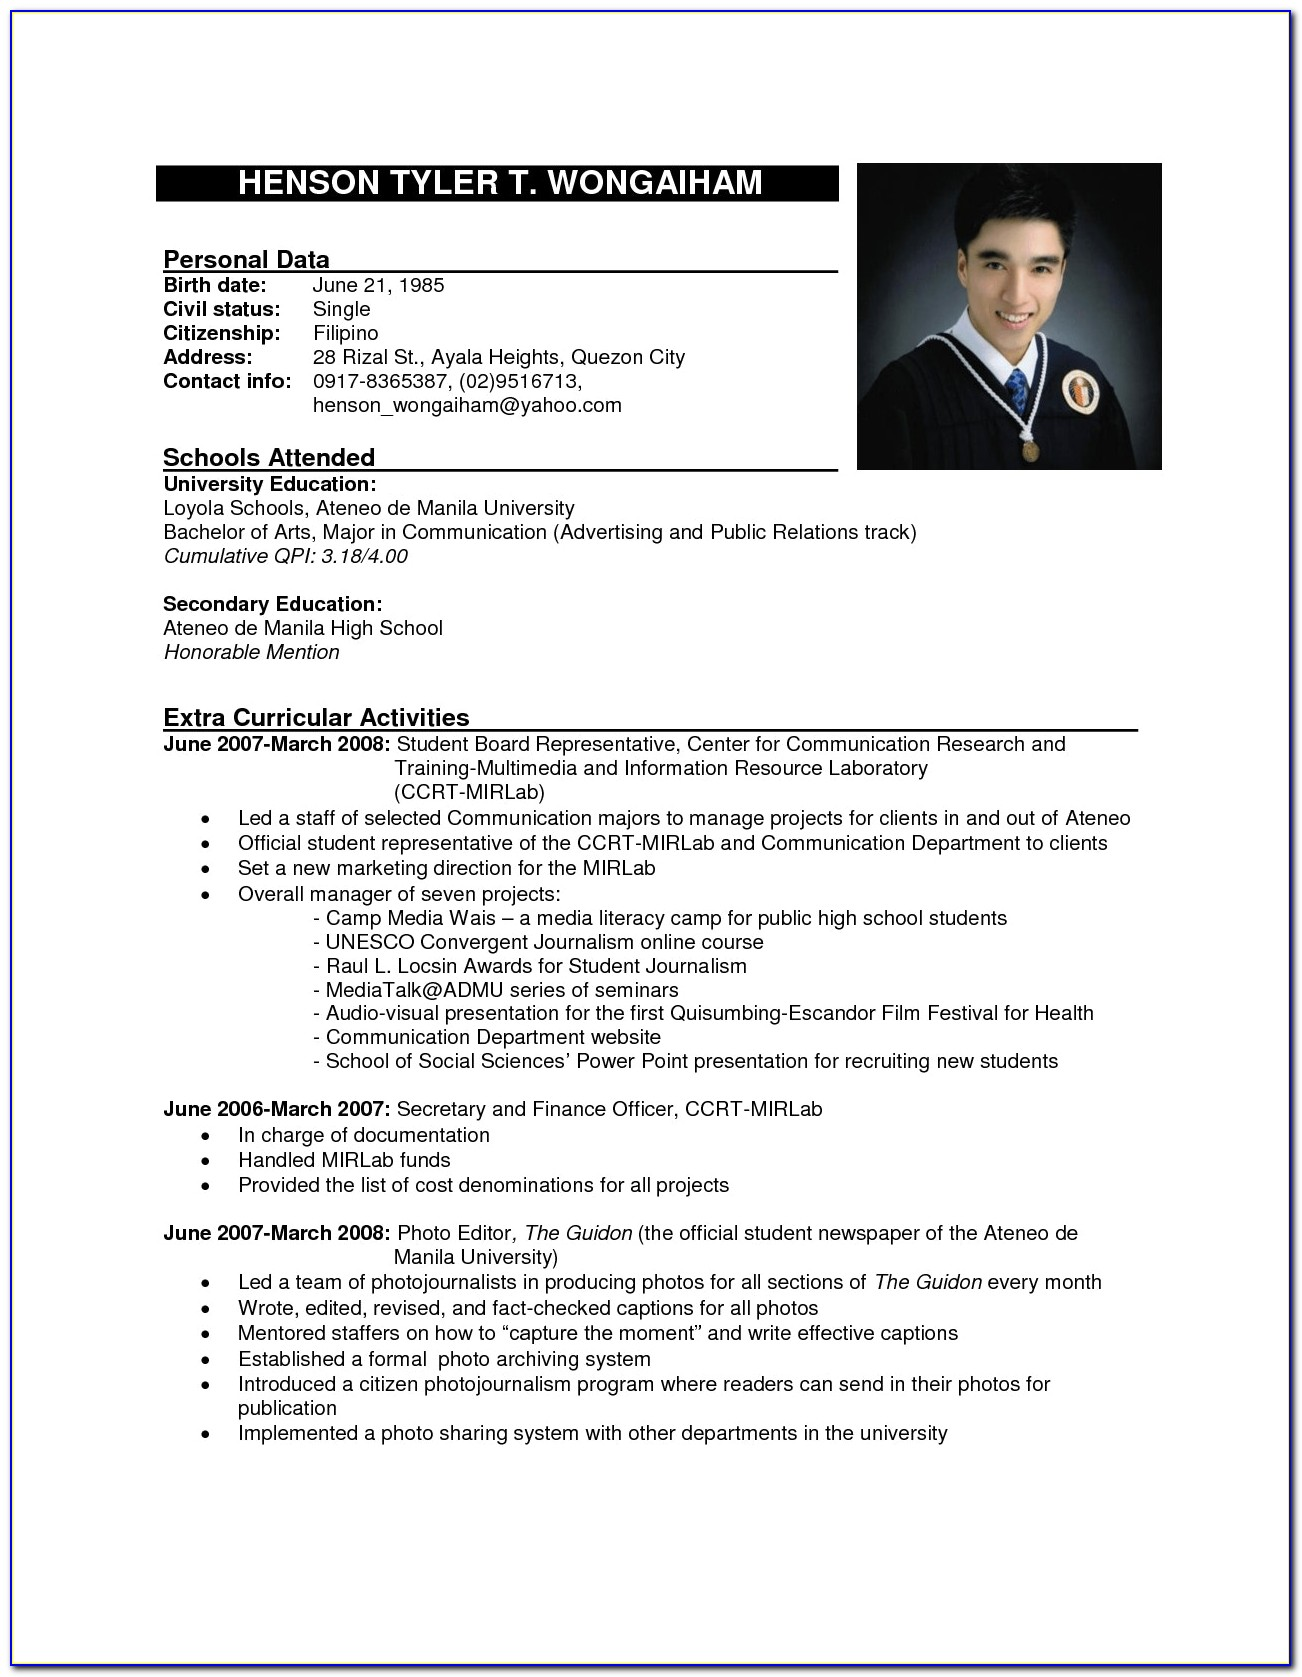 Sexamples Of Resume Format For Freshers